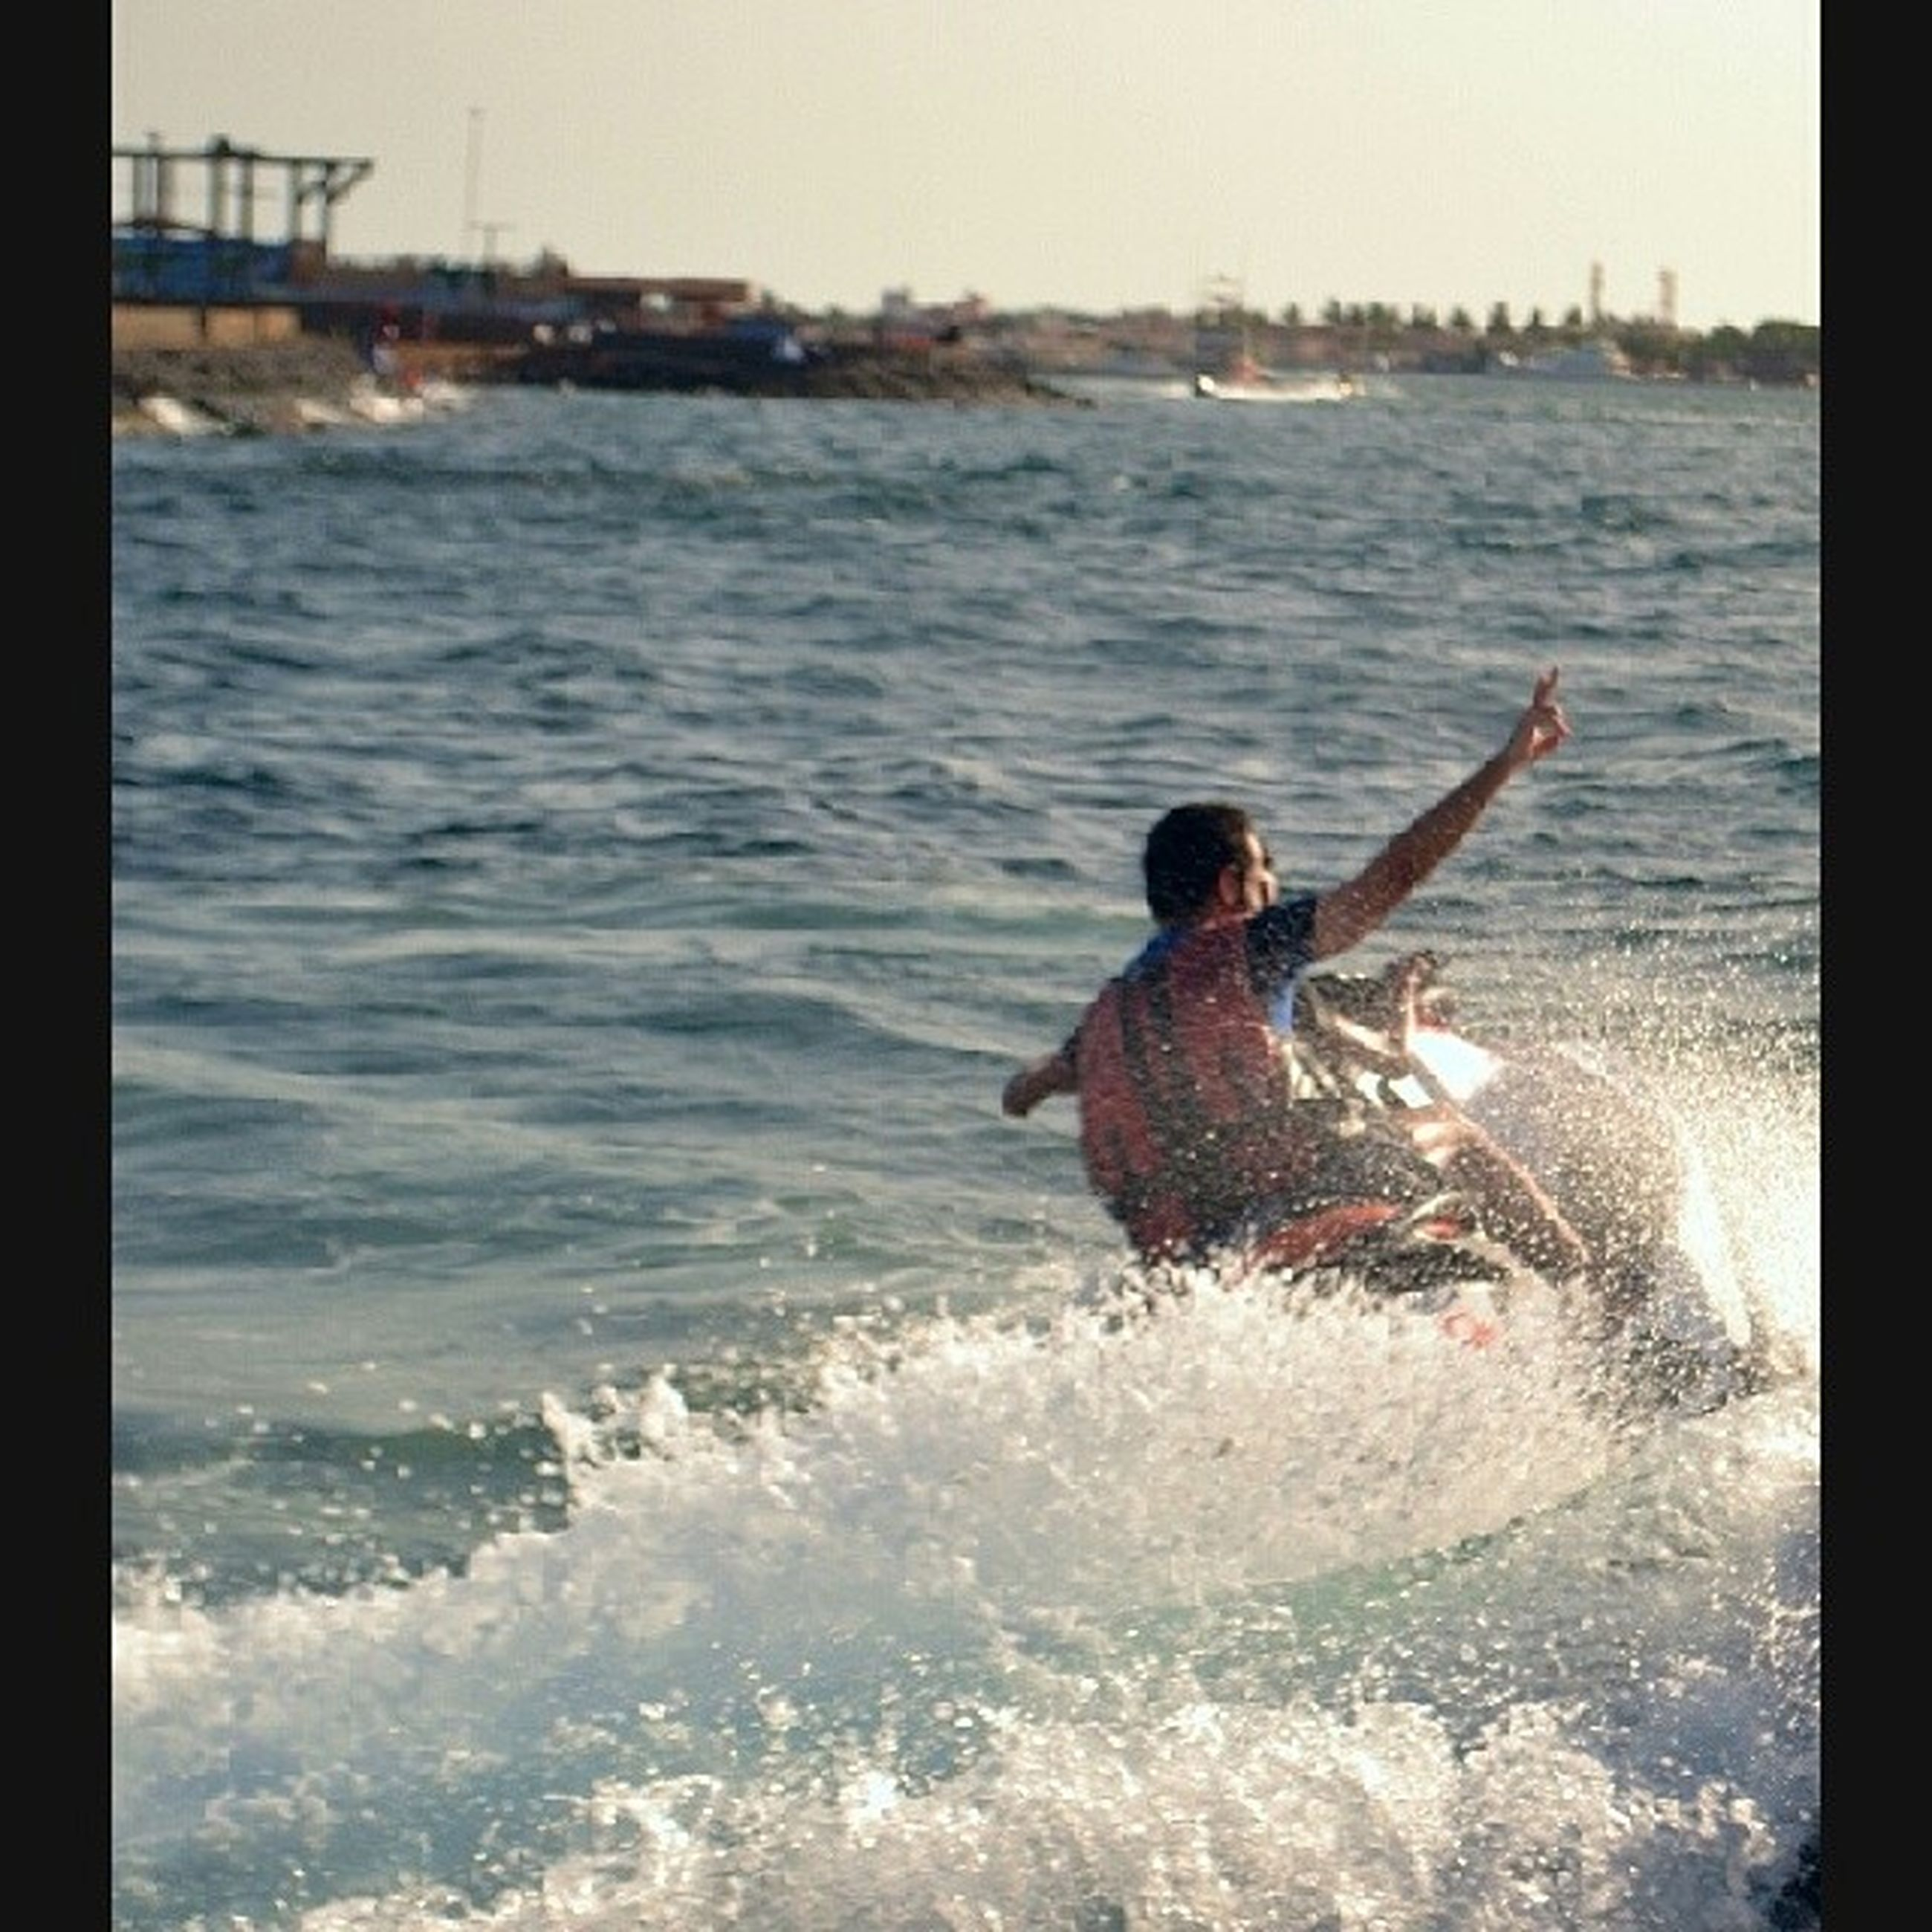 water, lifestyles, sea, leisure activity, waterfront, men, nautical vessel, rippled, holding, transportation, auto post production filter, mode of transport, sunlight, boat, nature, motion, outdoors, vacations